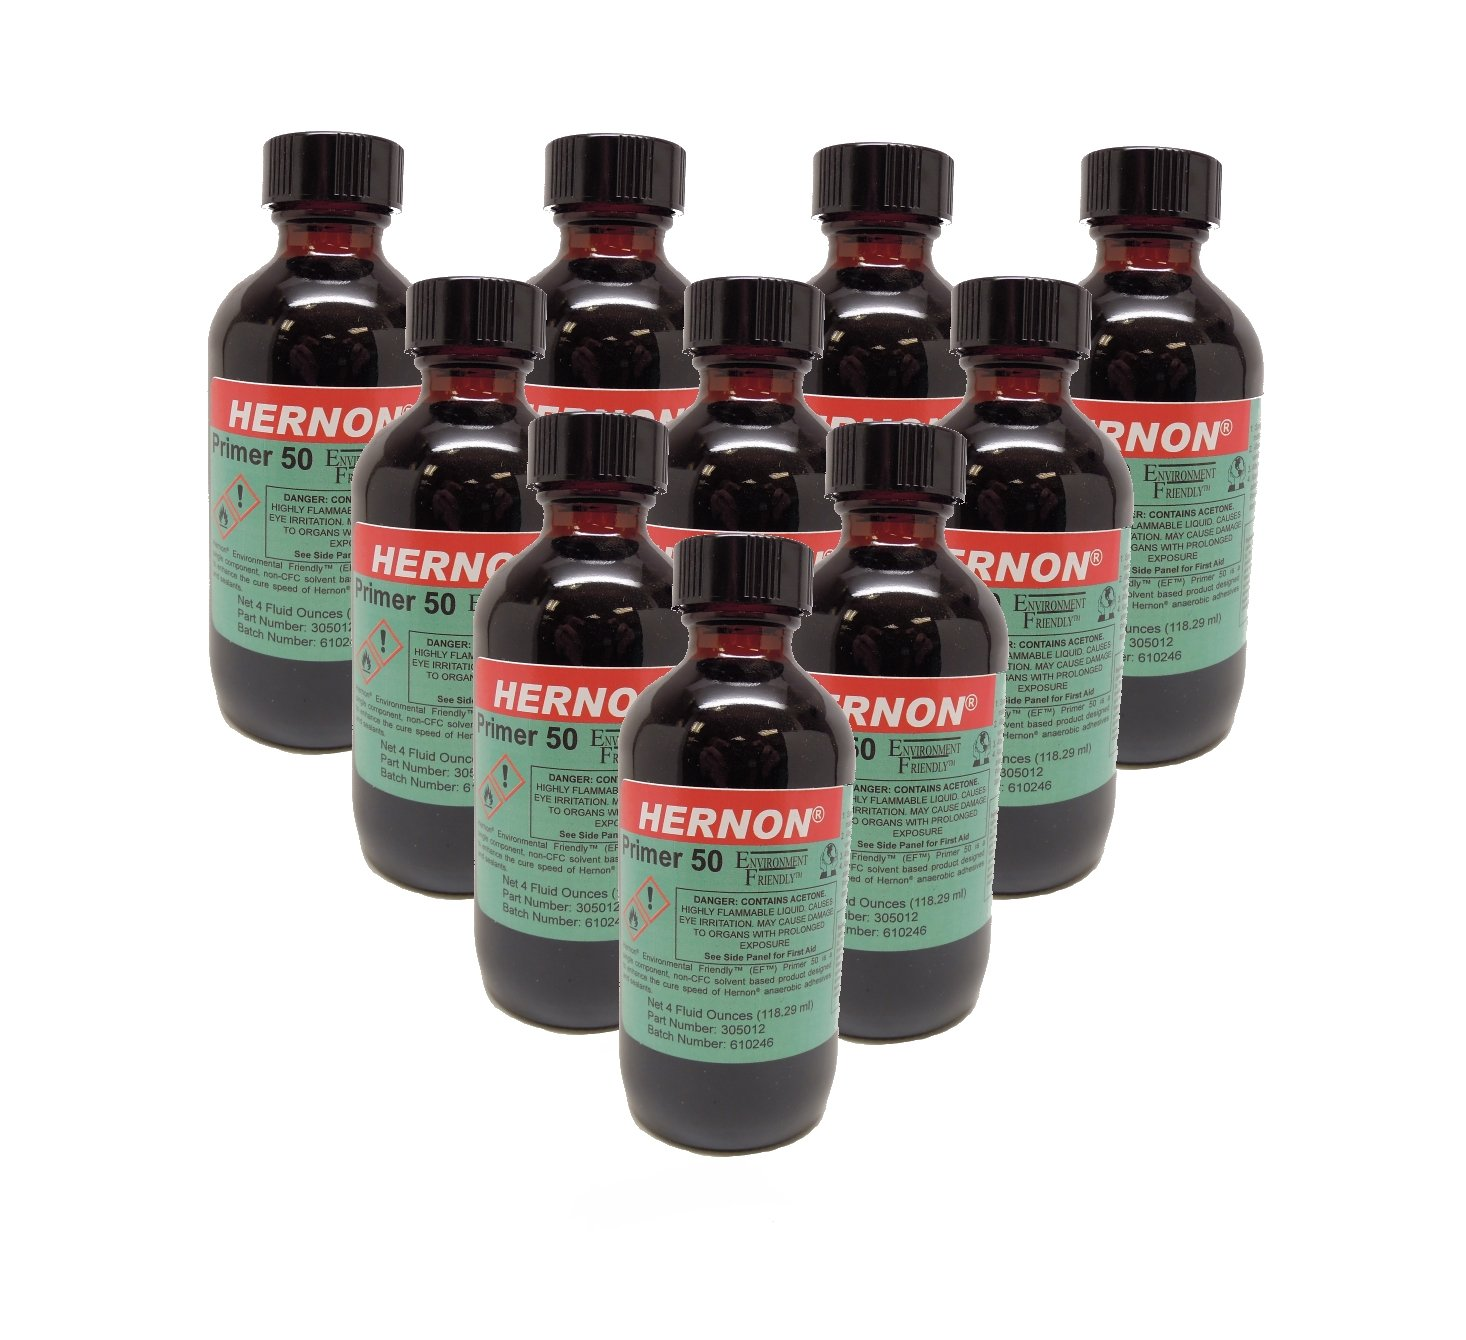 Hernon EF Primer 50 4-10 DEF Single Component Adhesive - 4 oz. Bottle with Pump 10-Pack